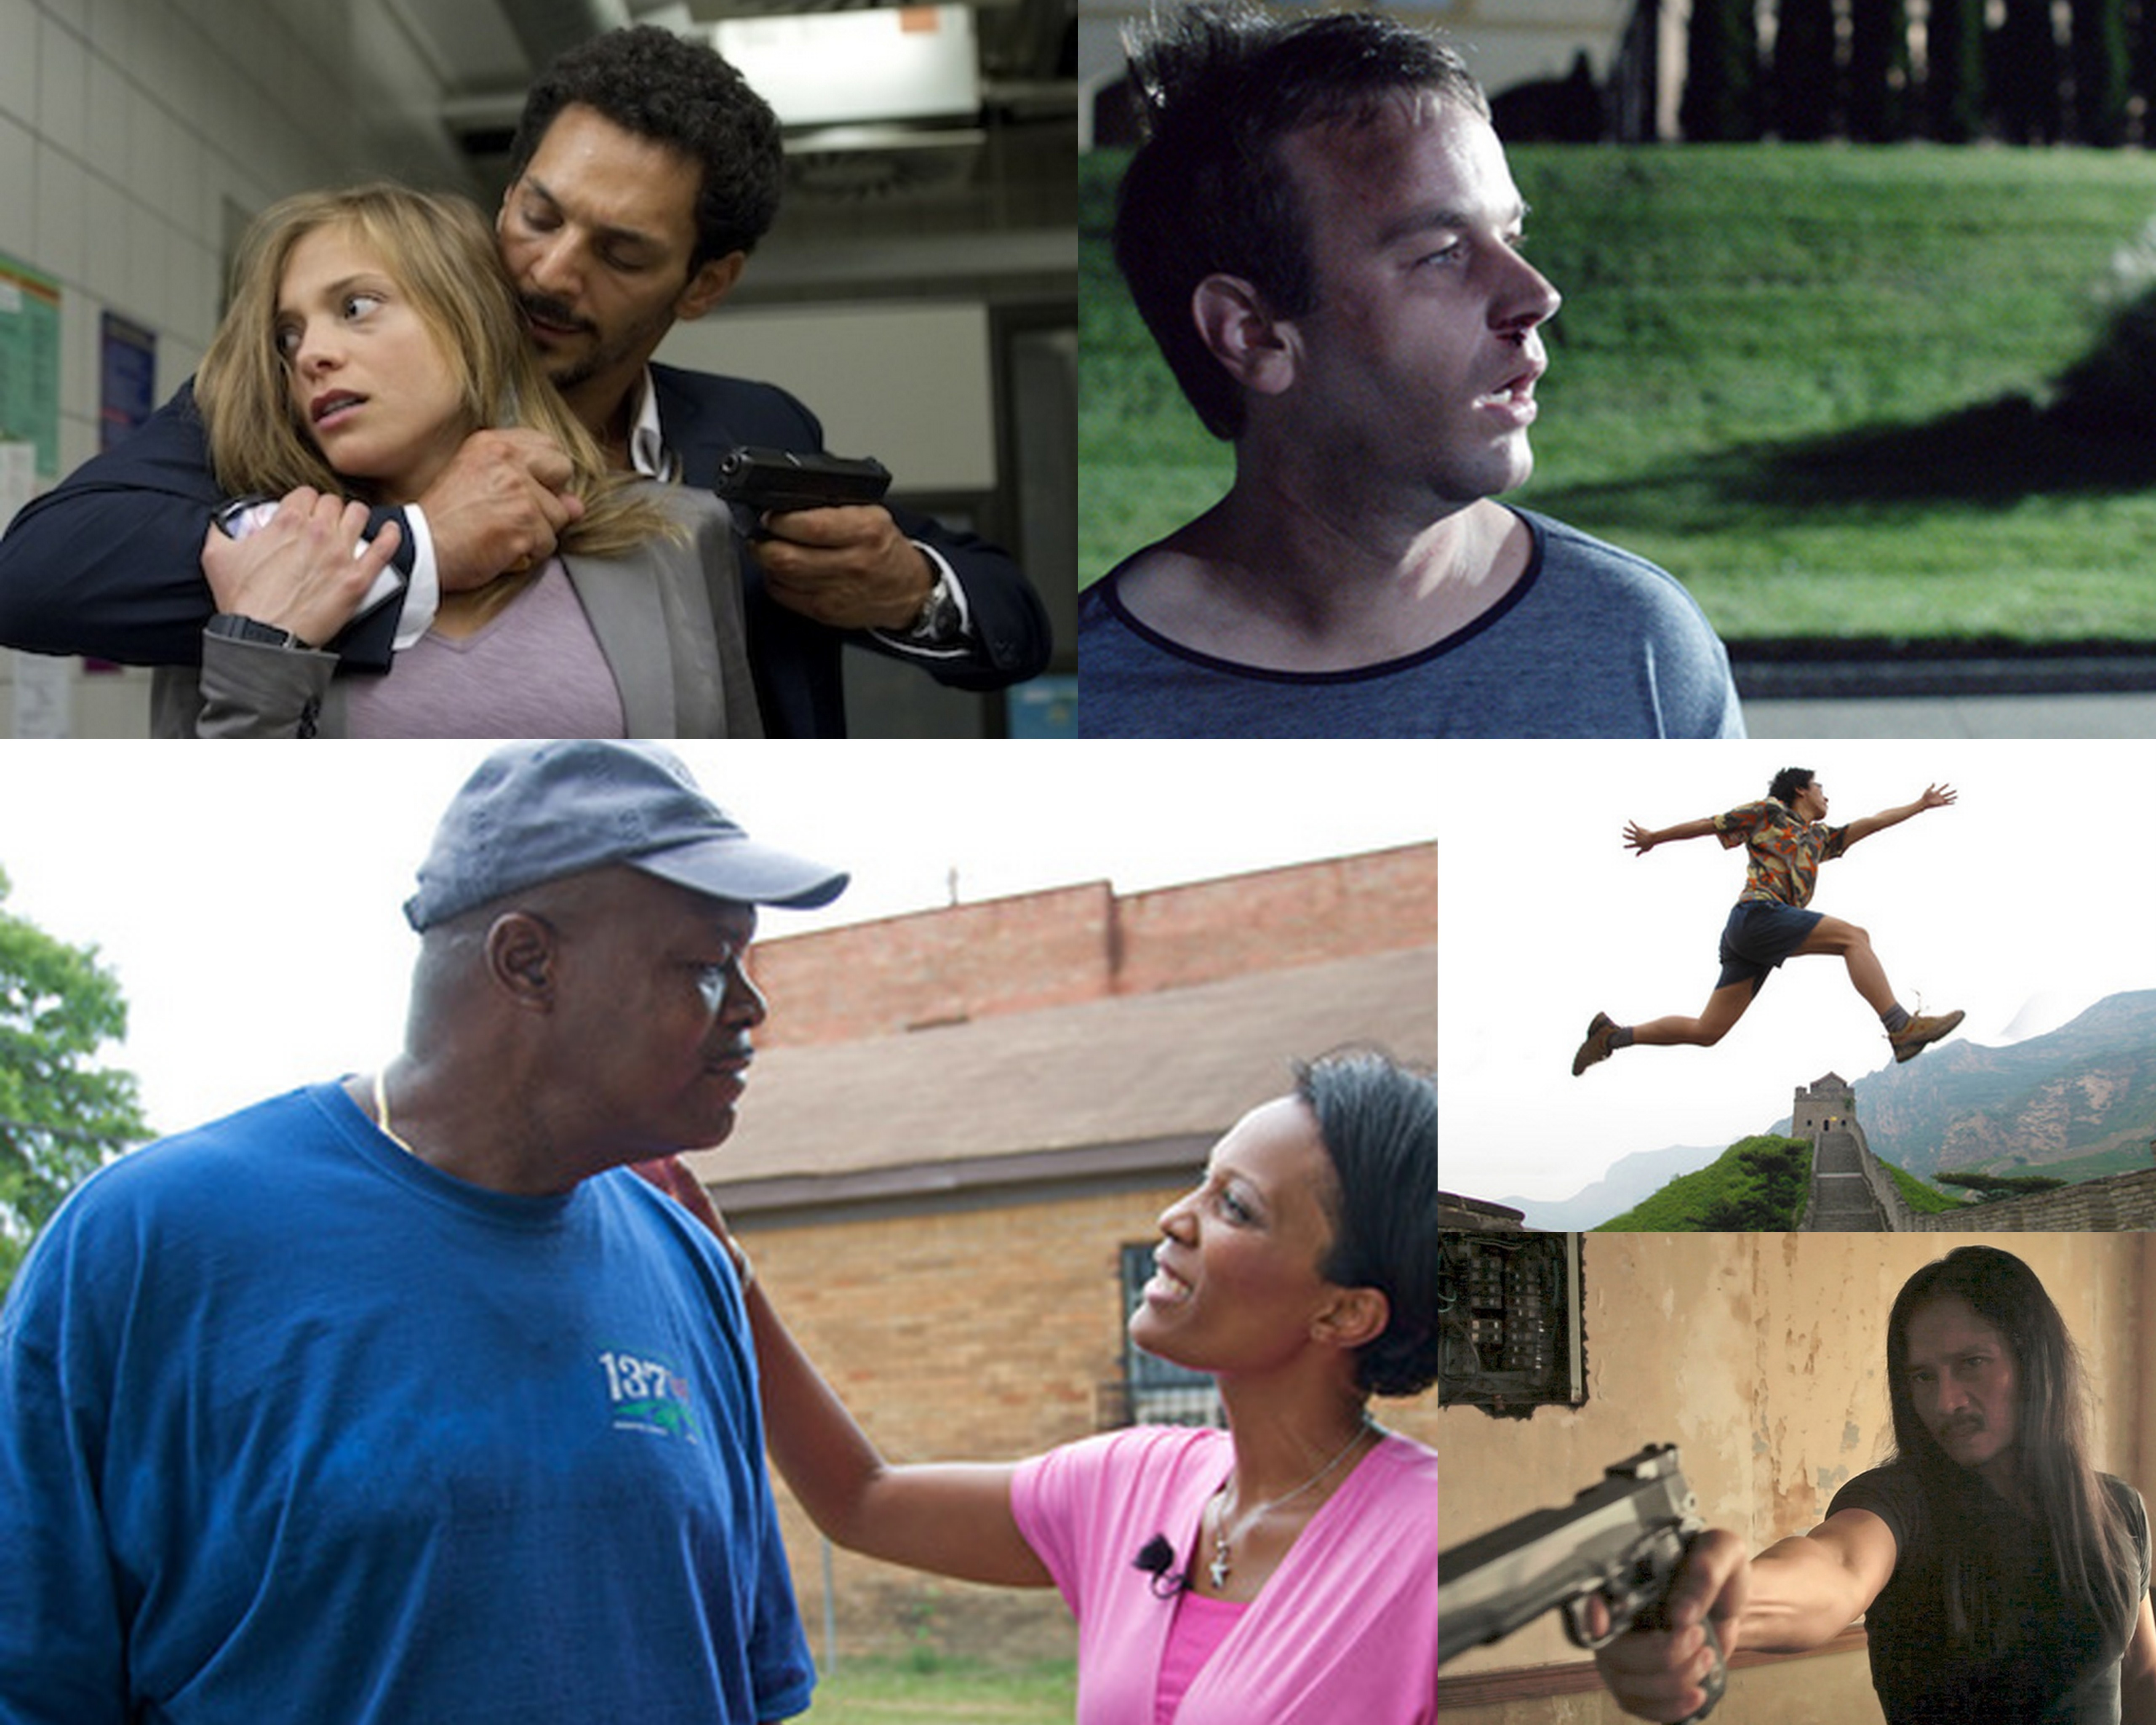 The Best Indie Movies of 2012 So Far, According to Criticwire